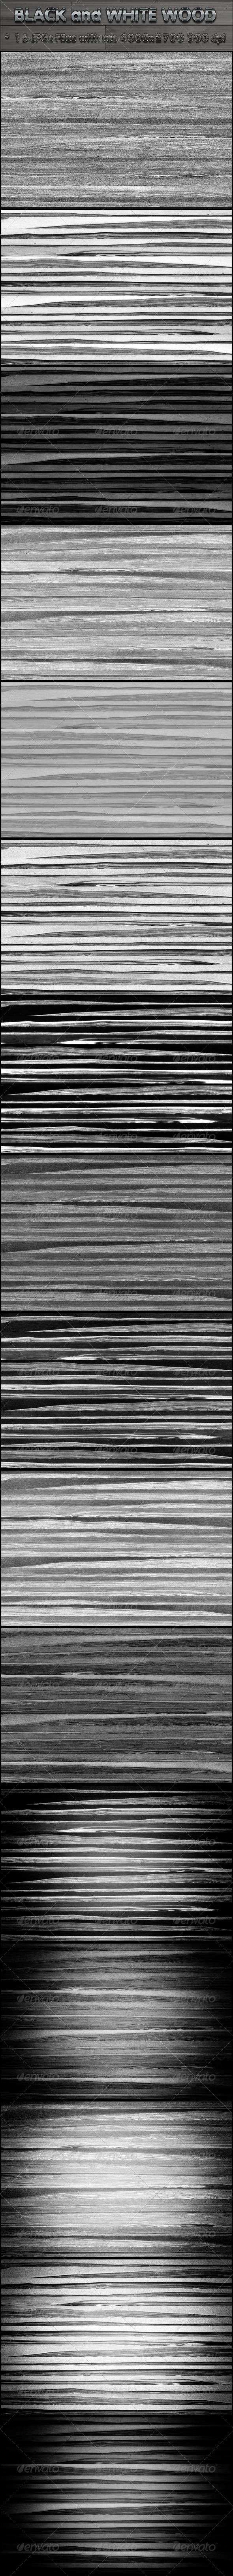 Wood Black and White - Miscellaneous Backgrounds